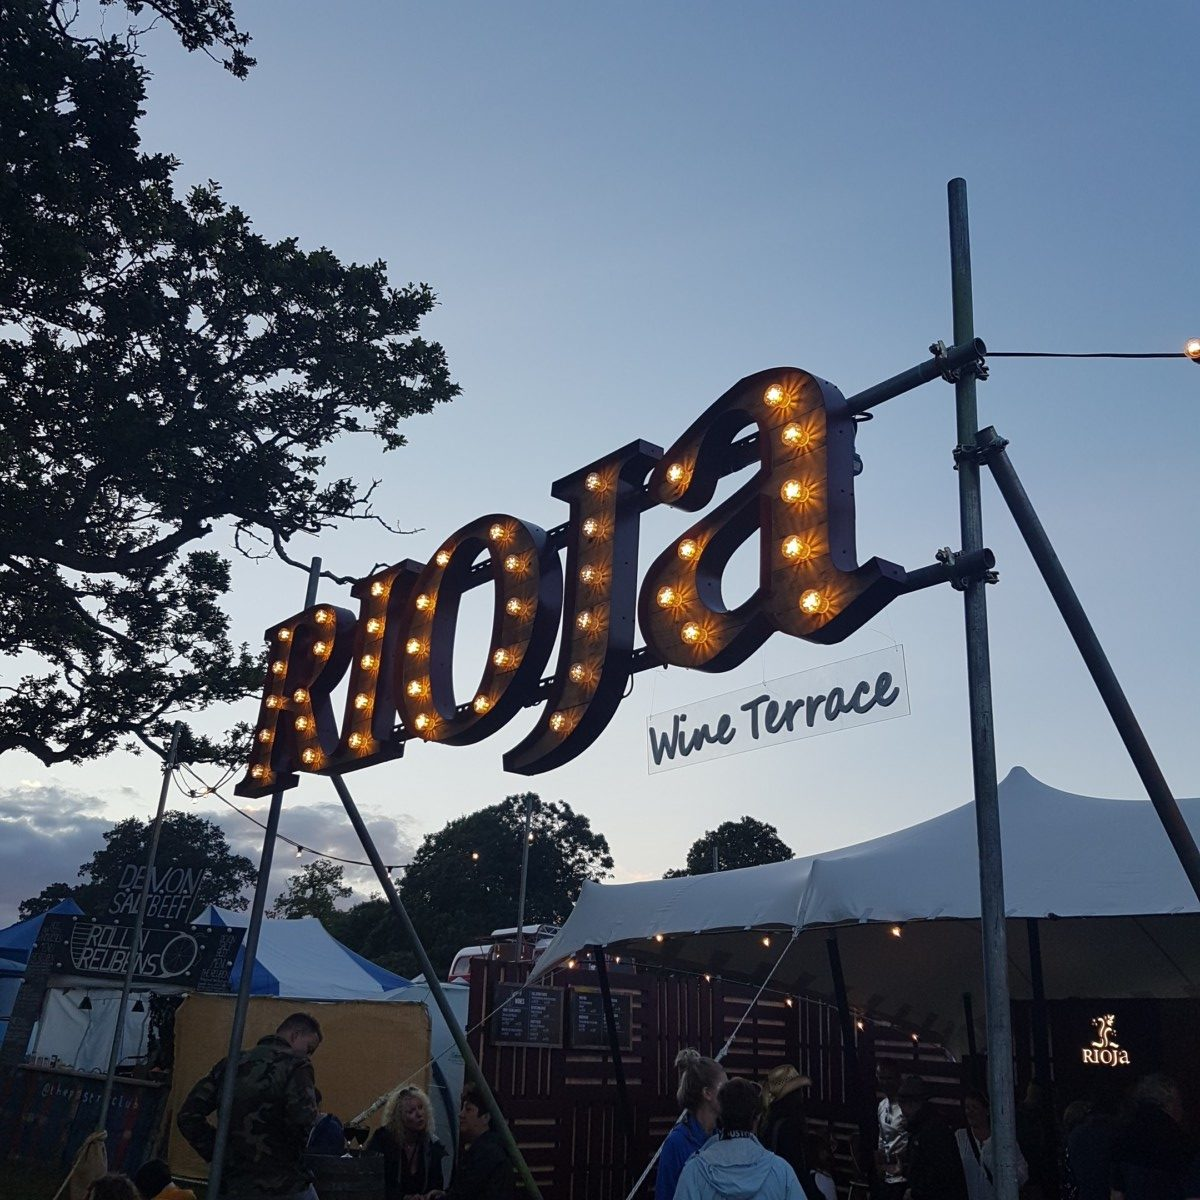 Rioja Wine Terrace Wilderness Festival